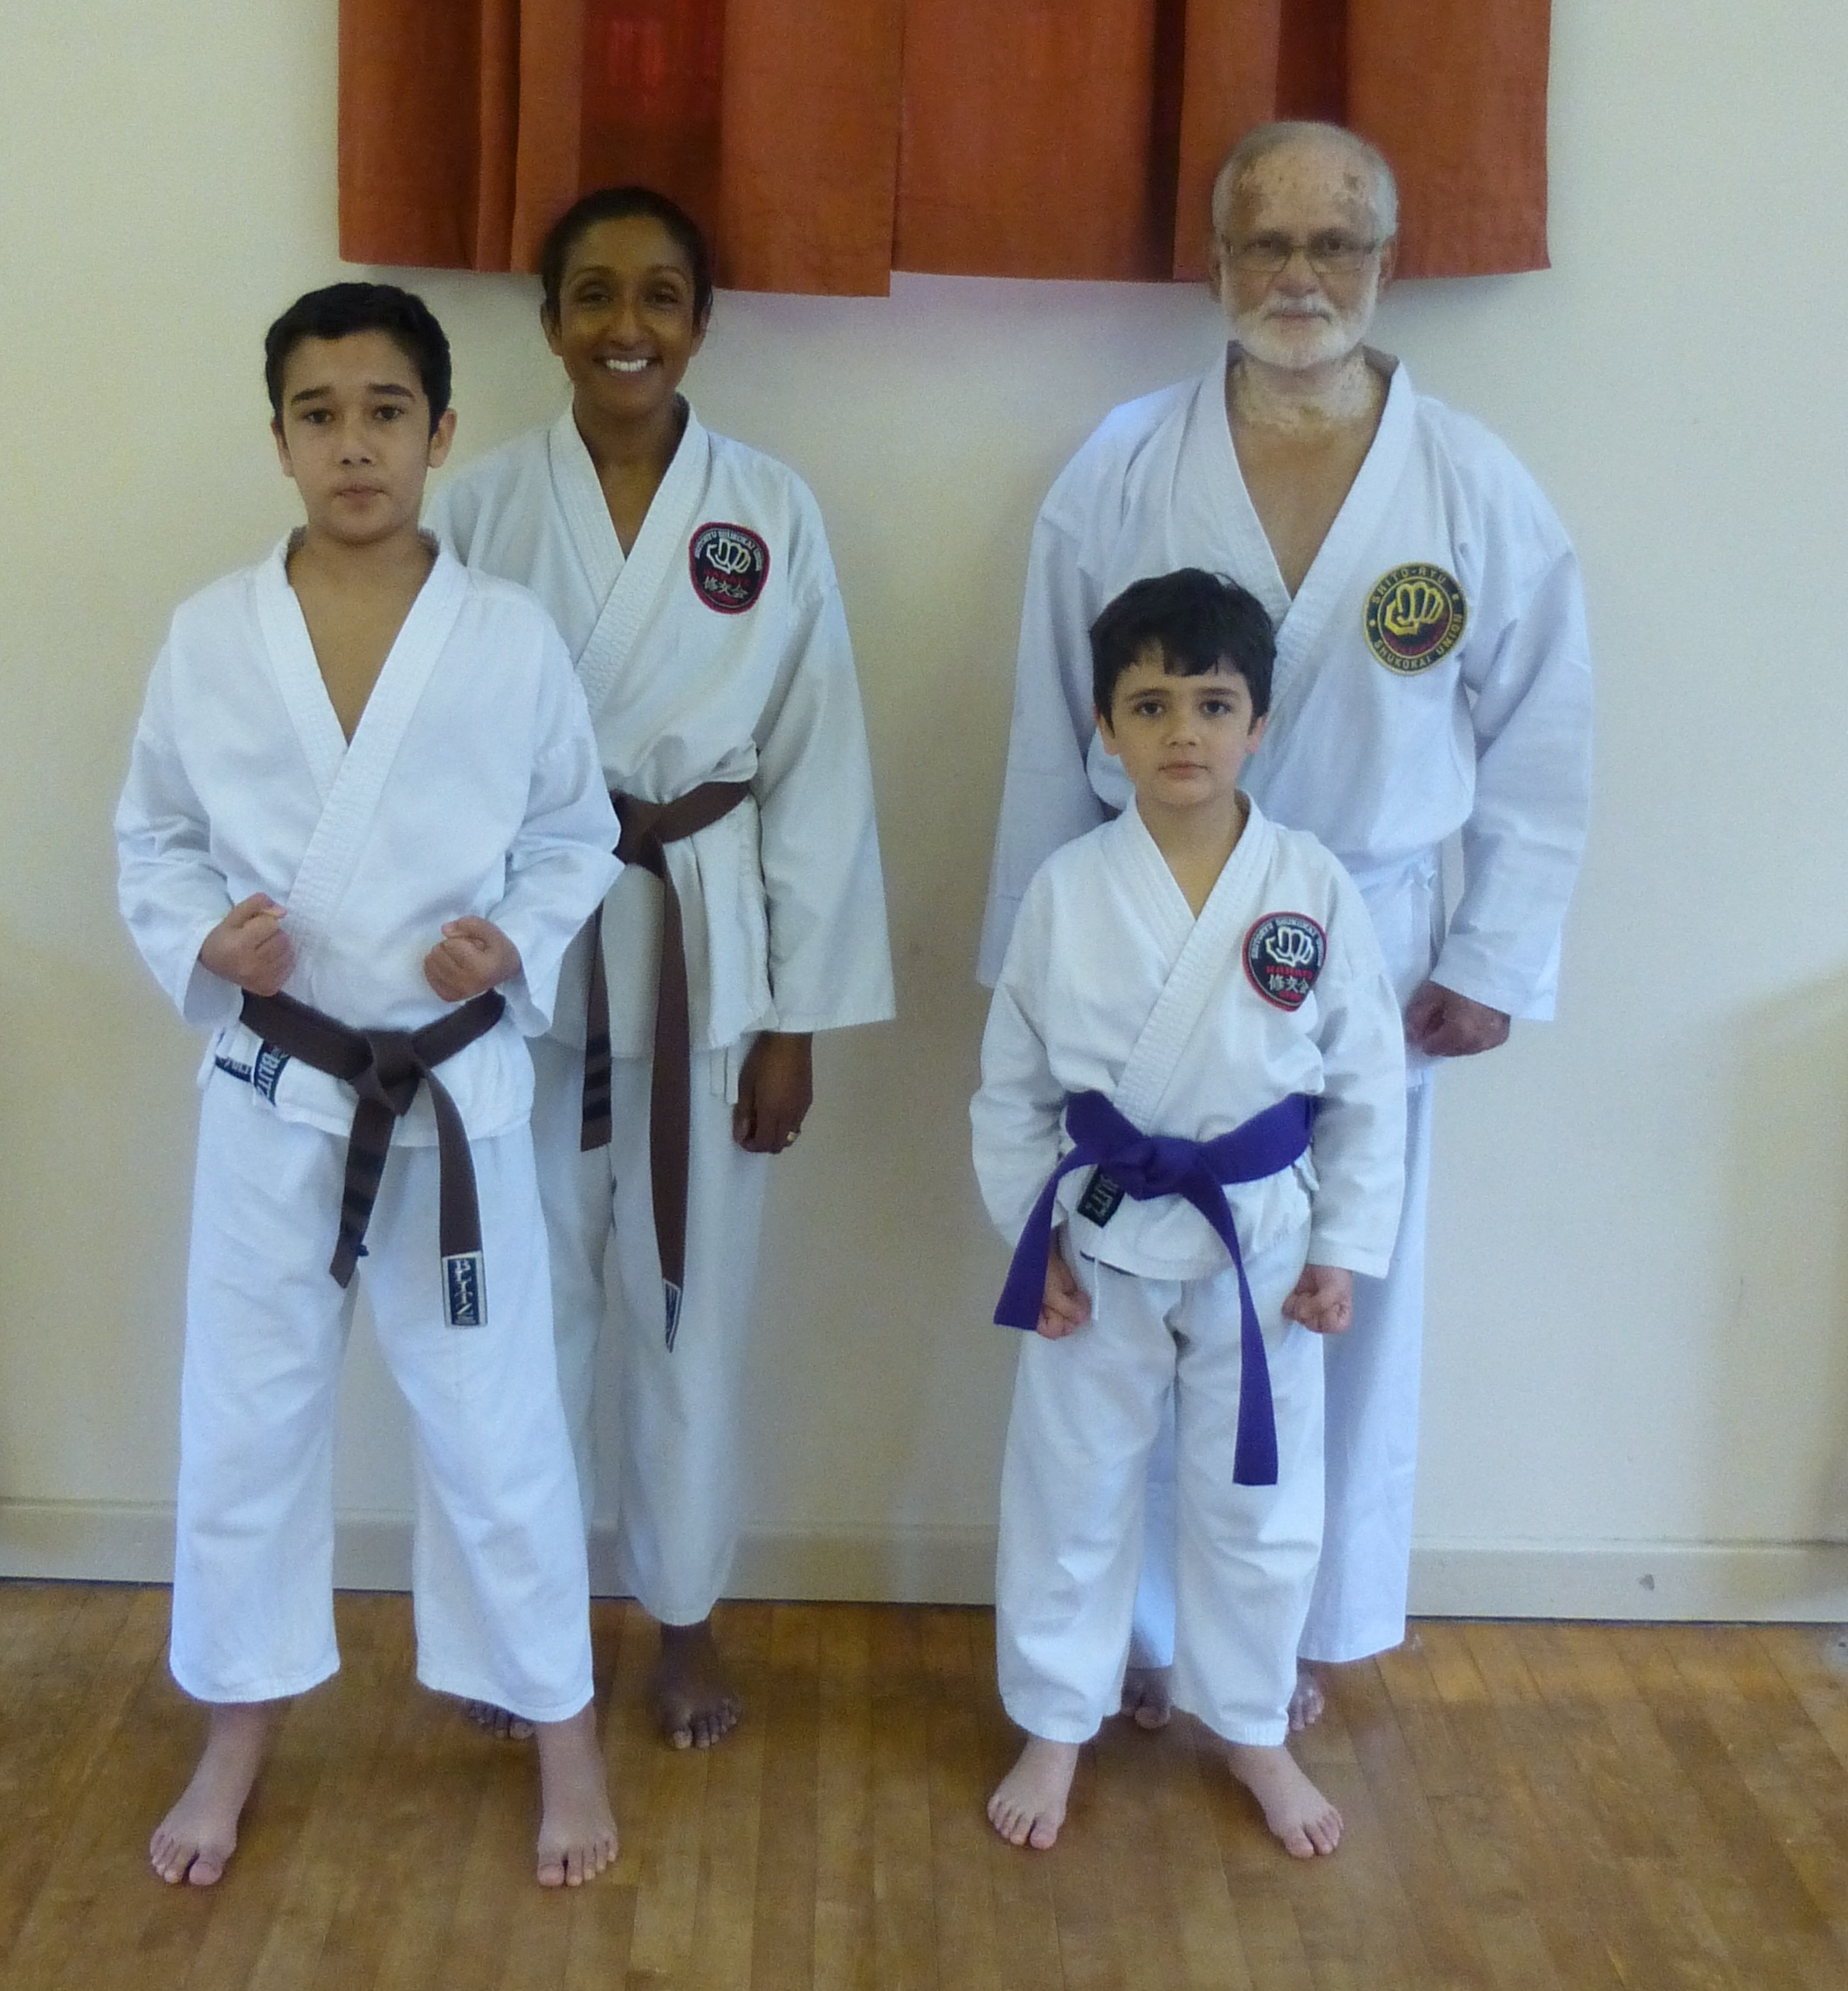 Three generations of karate enthusiasts. At the back is Vani and her father Ravi, with Vani's sons Rahul, left, and Arul